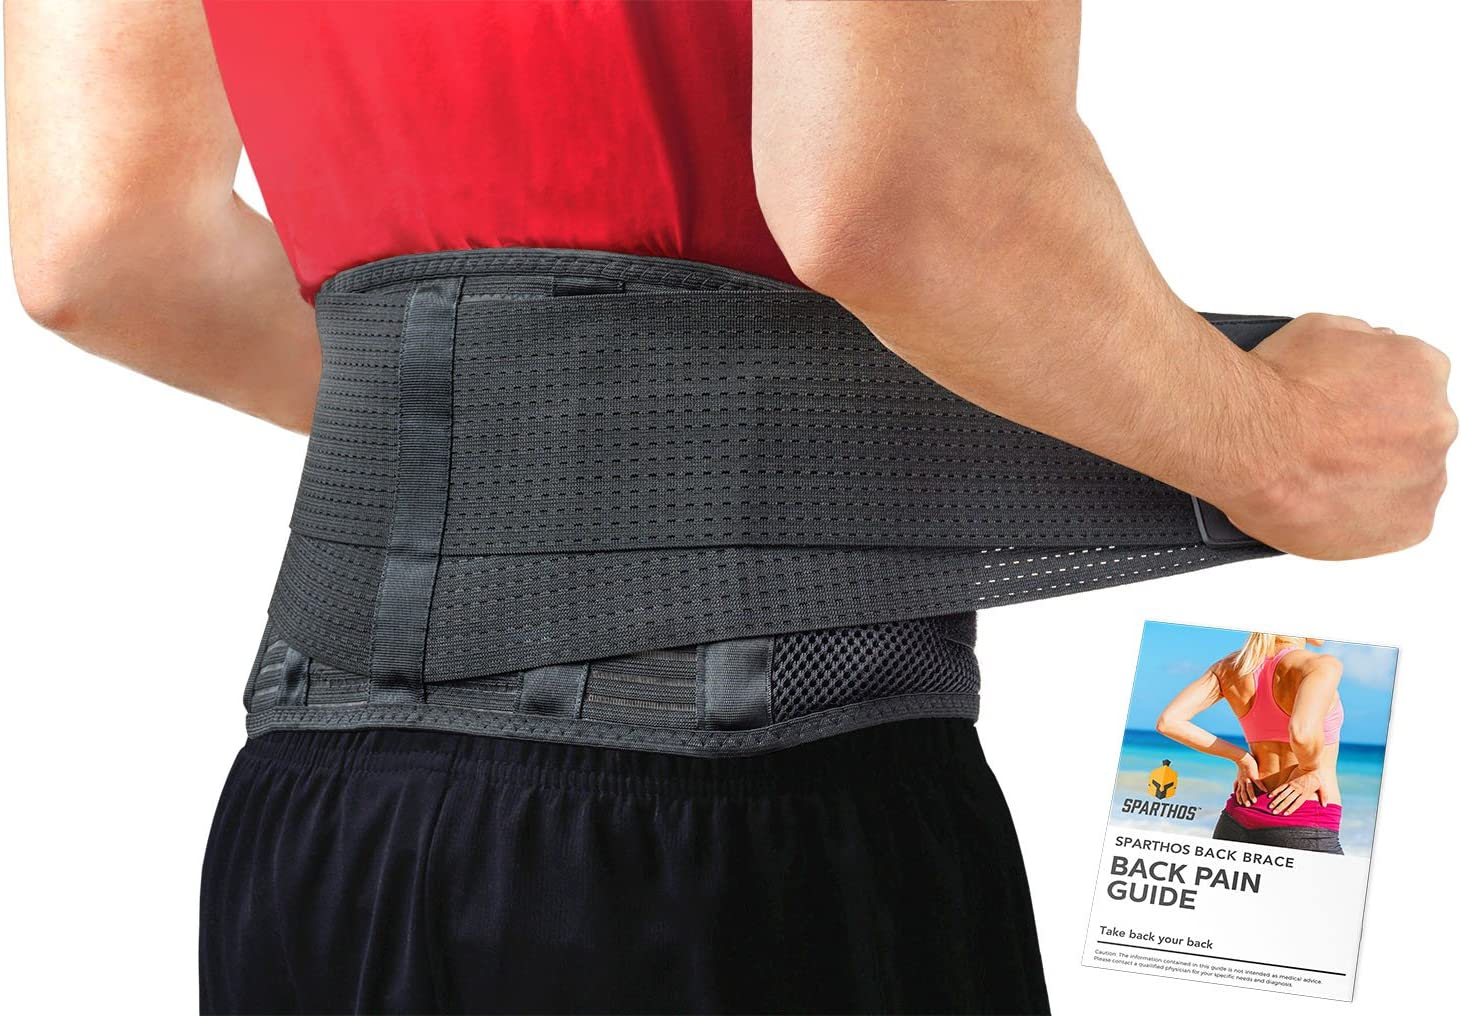 Back Brace by Sparthos - Immediate Relief for Back Pain, Herniated Disc, Sciatica, Scoliosis and more! – Breathable Mesh Design with Lumbar Pad – Adjustable Support Straps – Lower Back Belt [Size Med]: Health & Personal Care